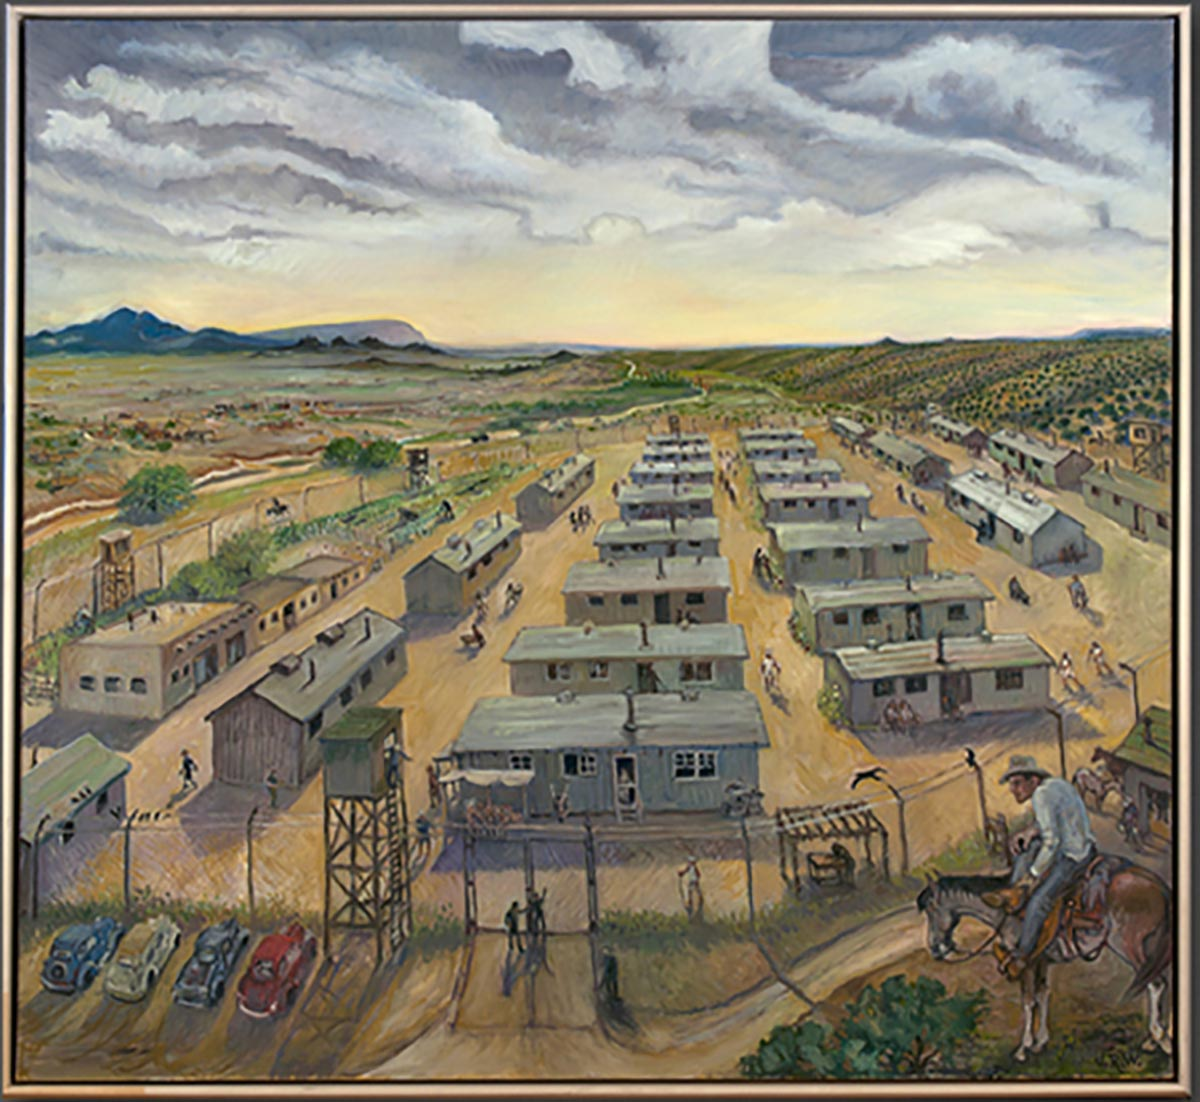 Jerry West, Japanese Internment Camp (Santa Fe)